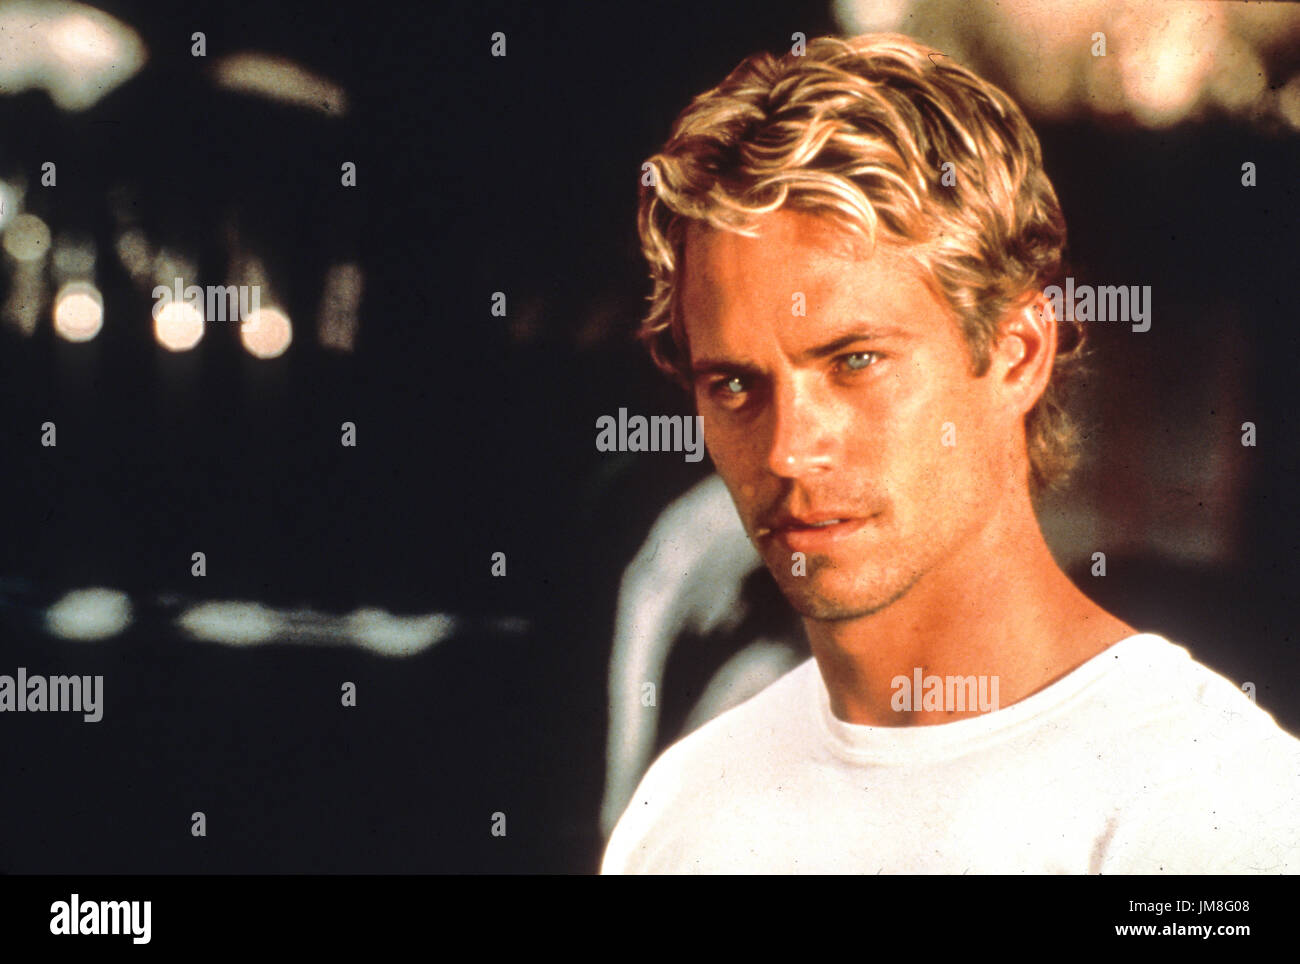 fast and the furious, paul walker, 2001 - Stock Image